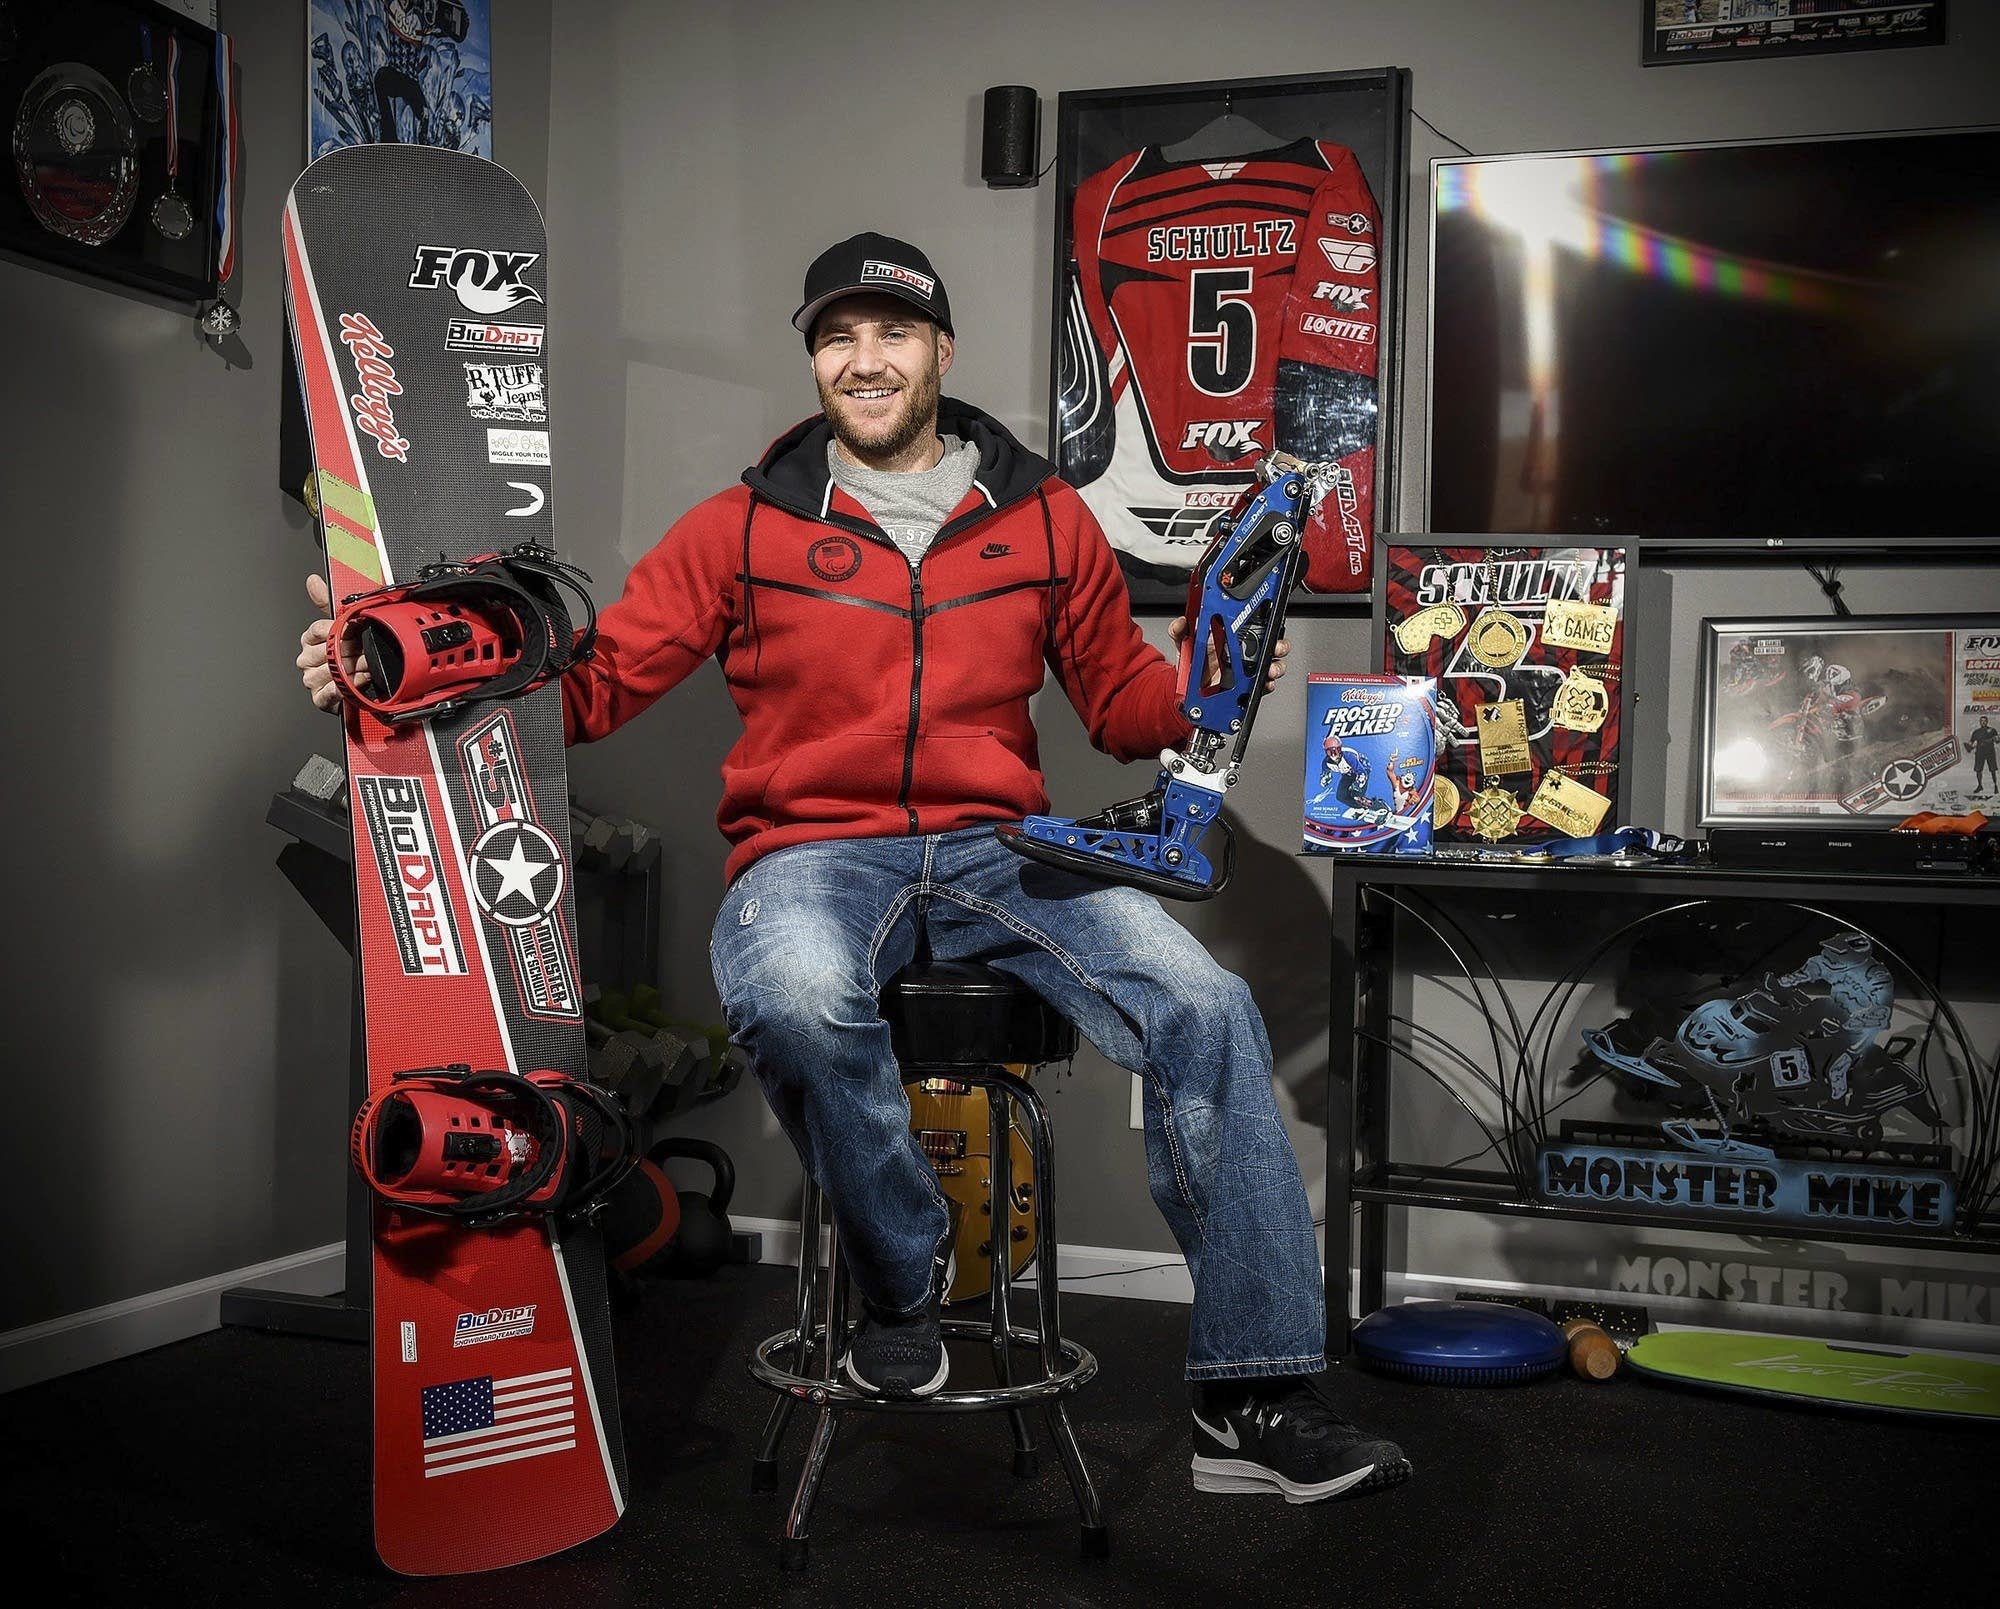 Mike Schultz poses for a photo in his shop.